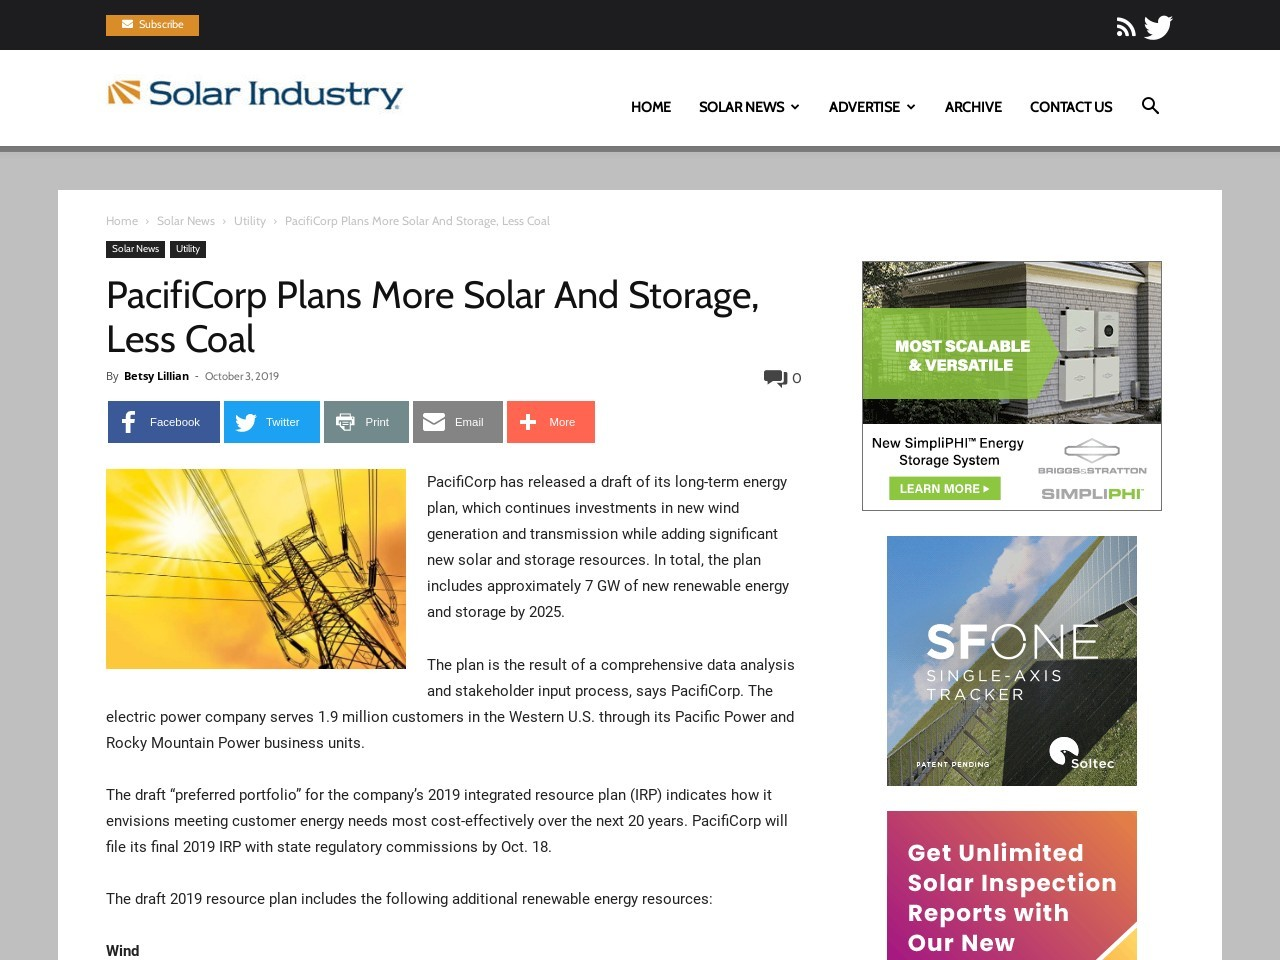 PacifiCorp Plans More Solar And Storage, Less Coal